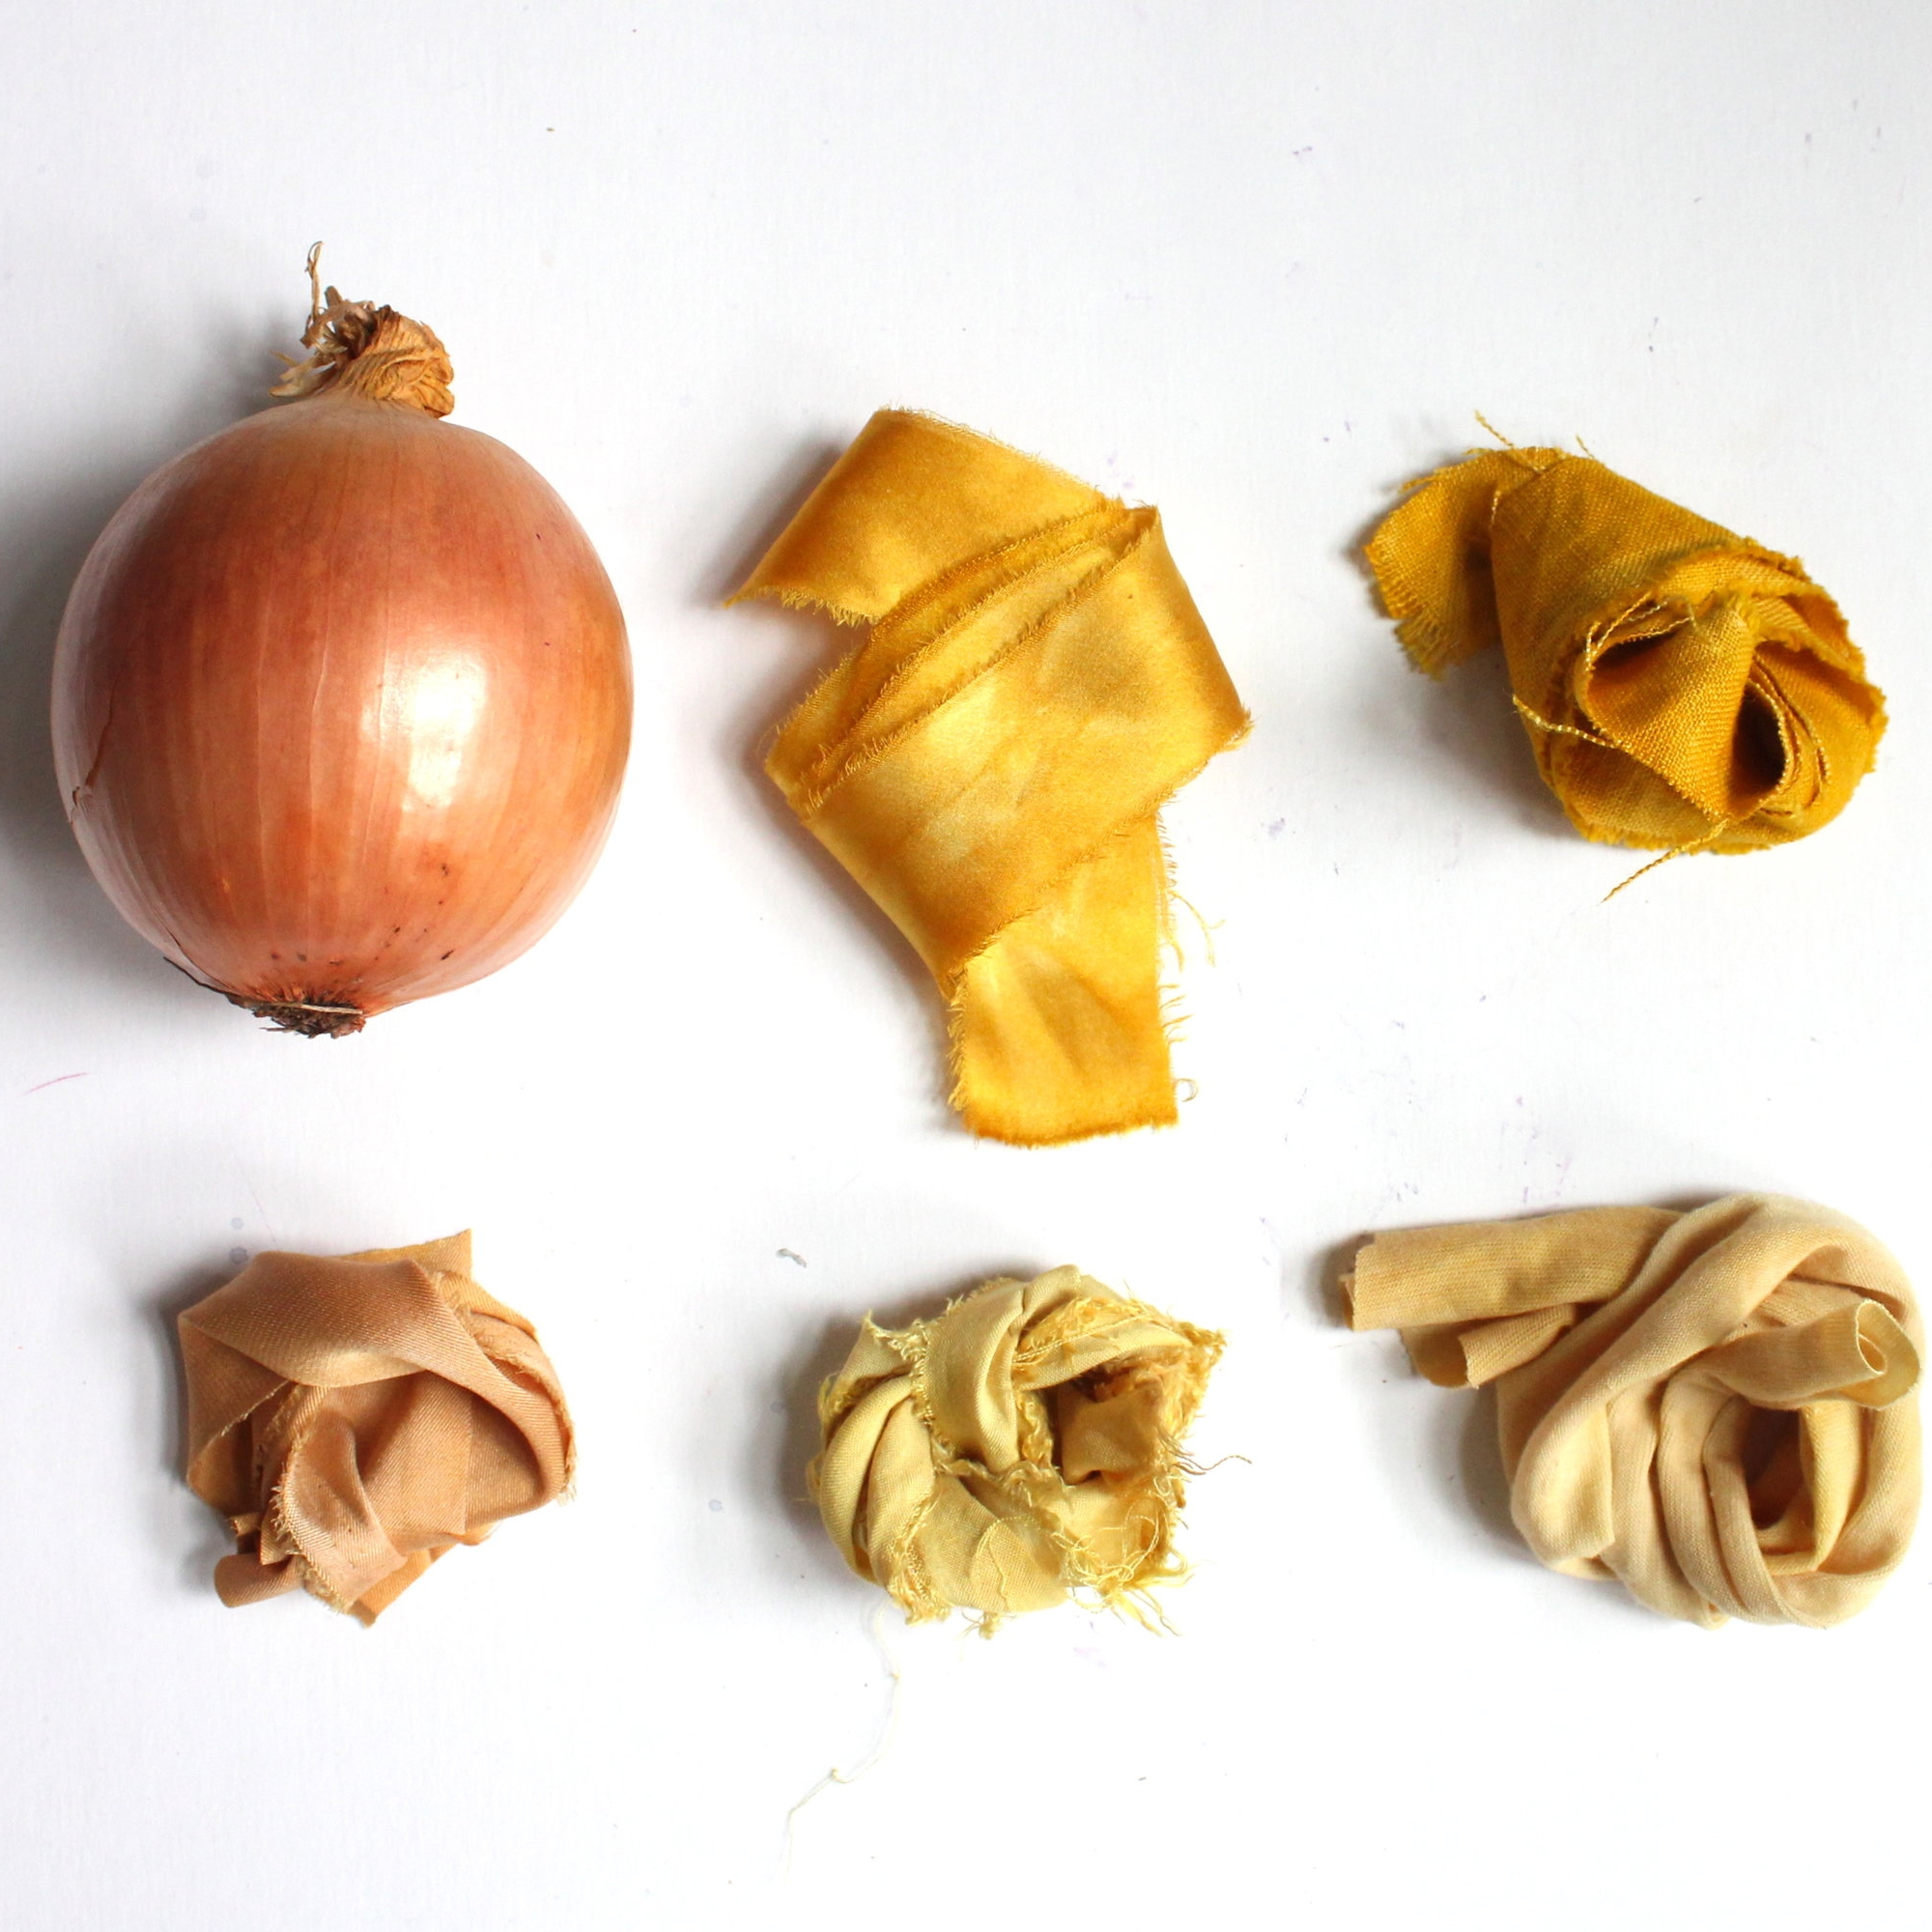 Yellow Onion Skins  The skins of a yellow onion make varying shades of yellow and gold.